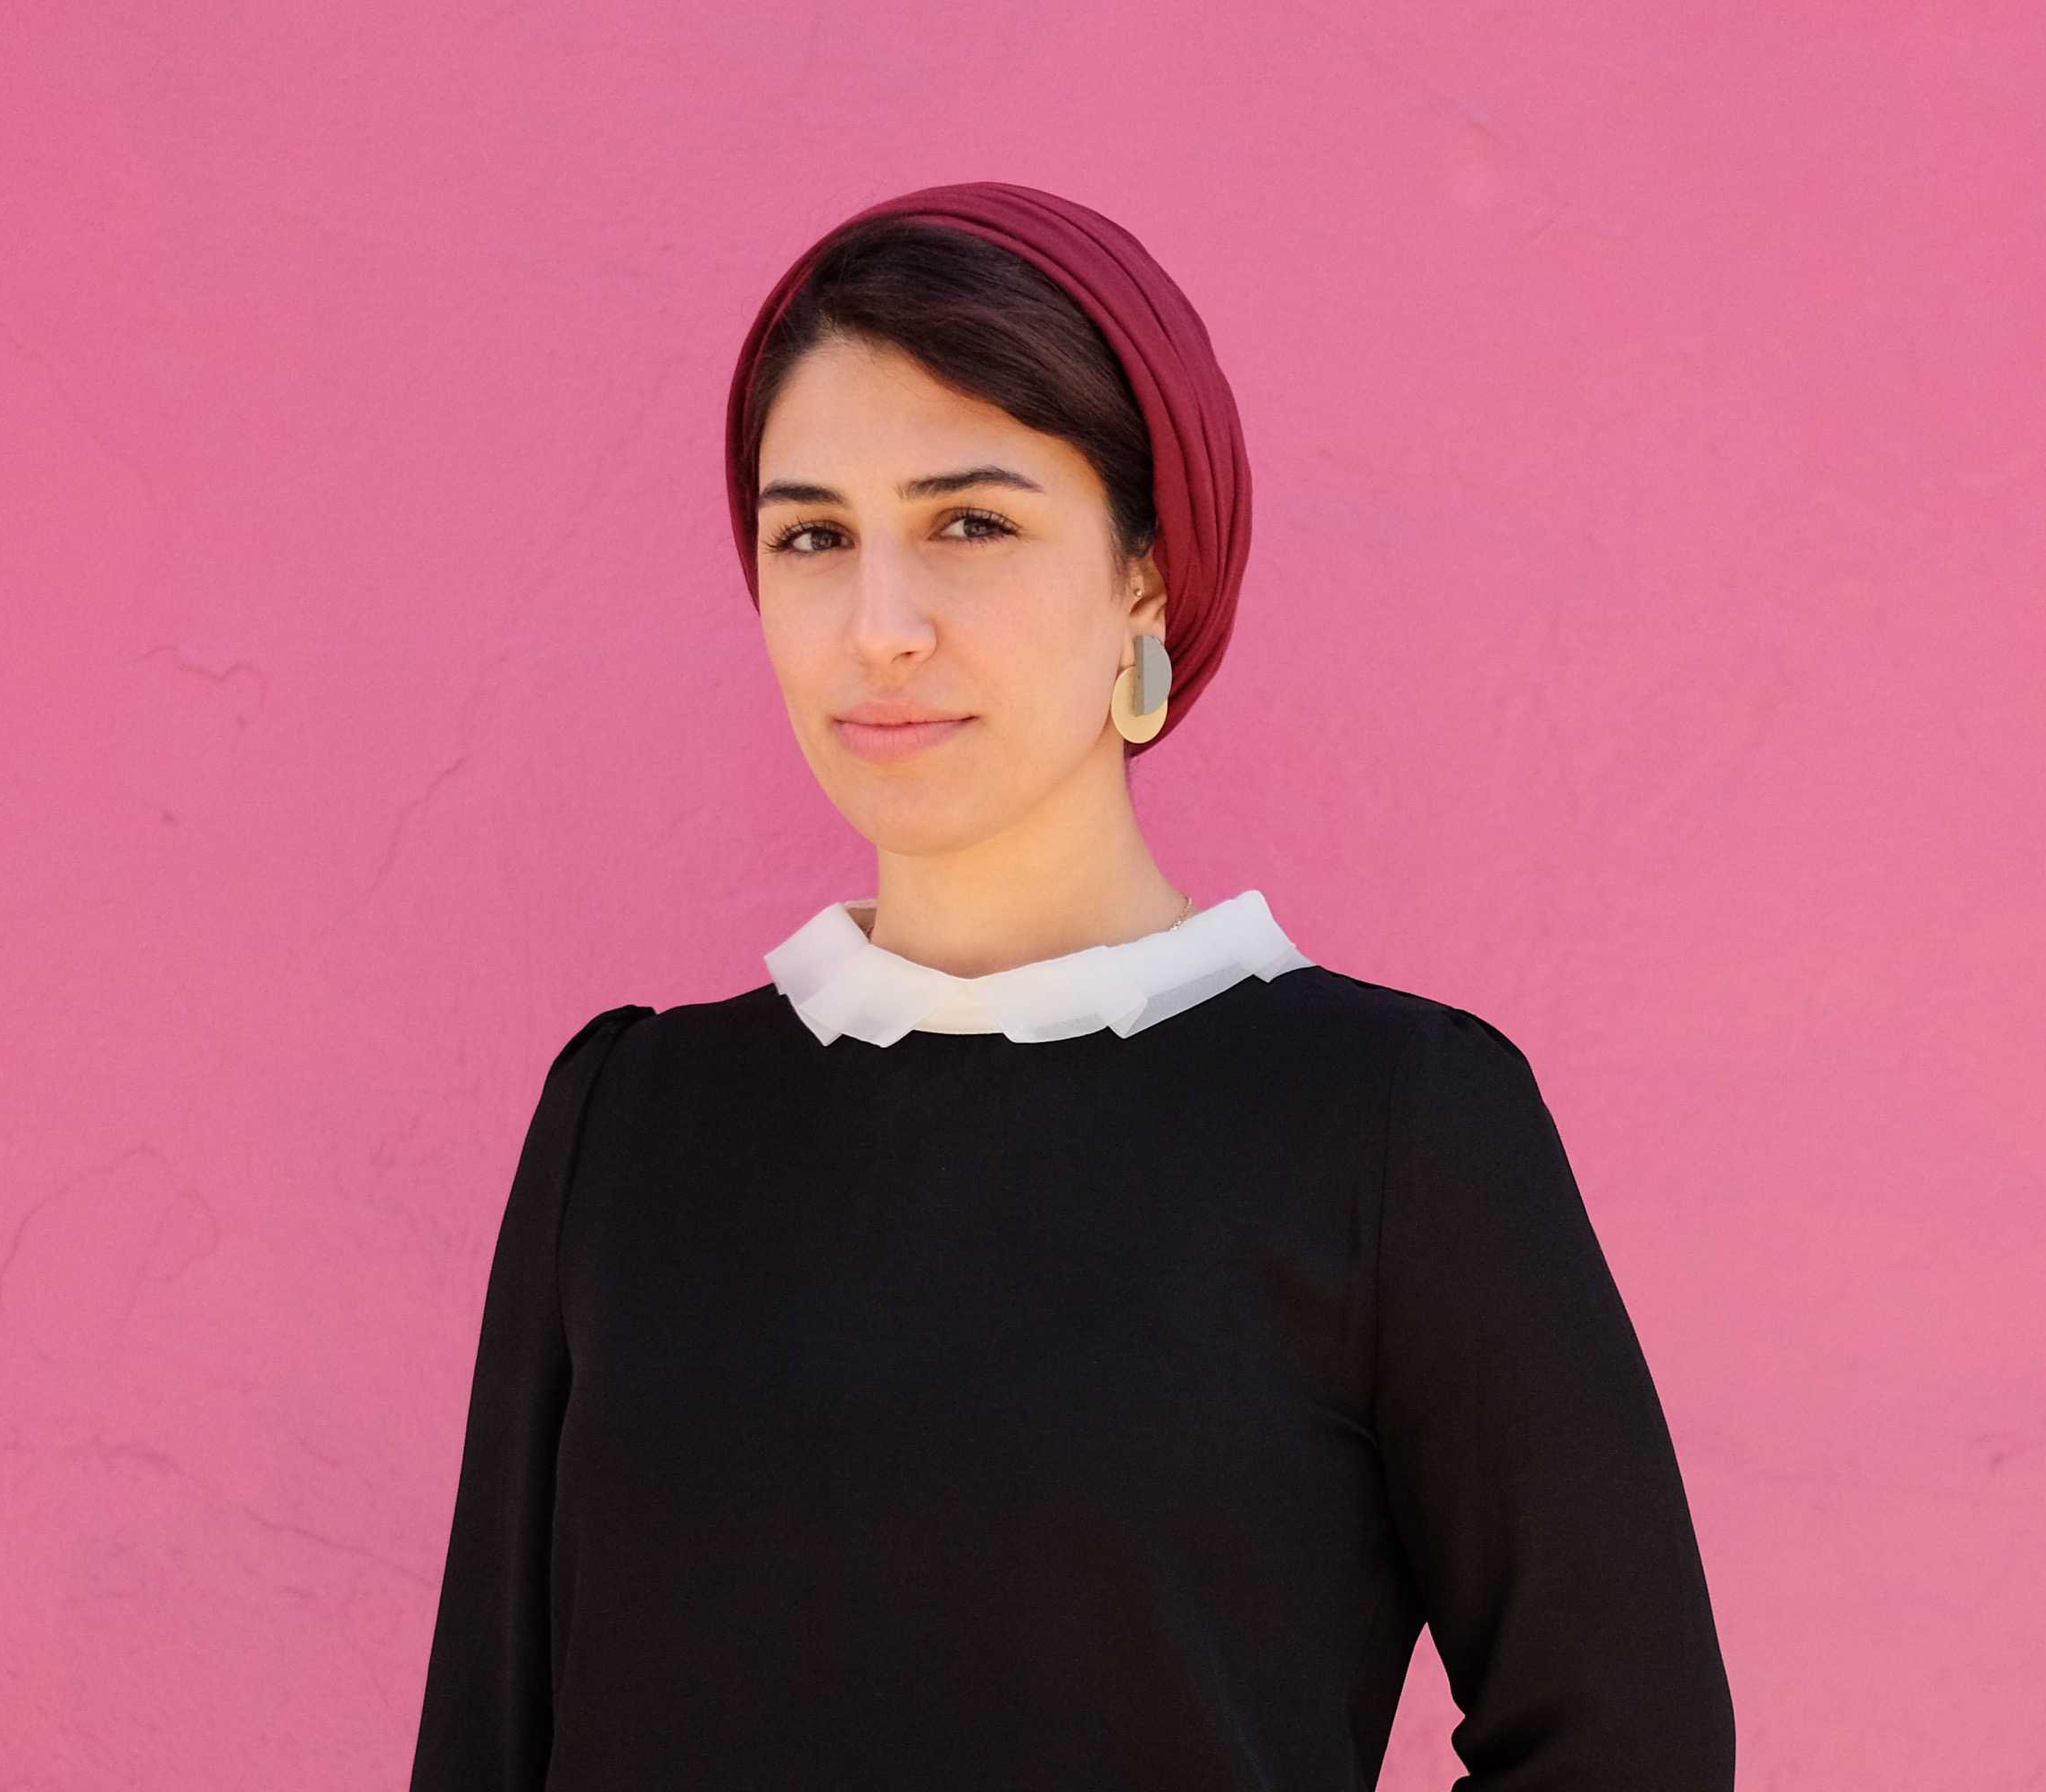 Hanieh wearing a navy sweater with a white collar in front of a pink background smiling.